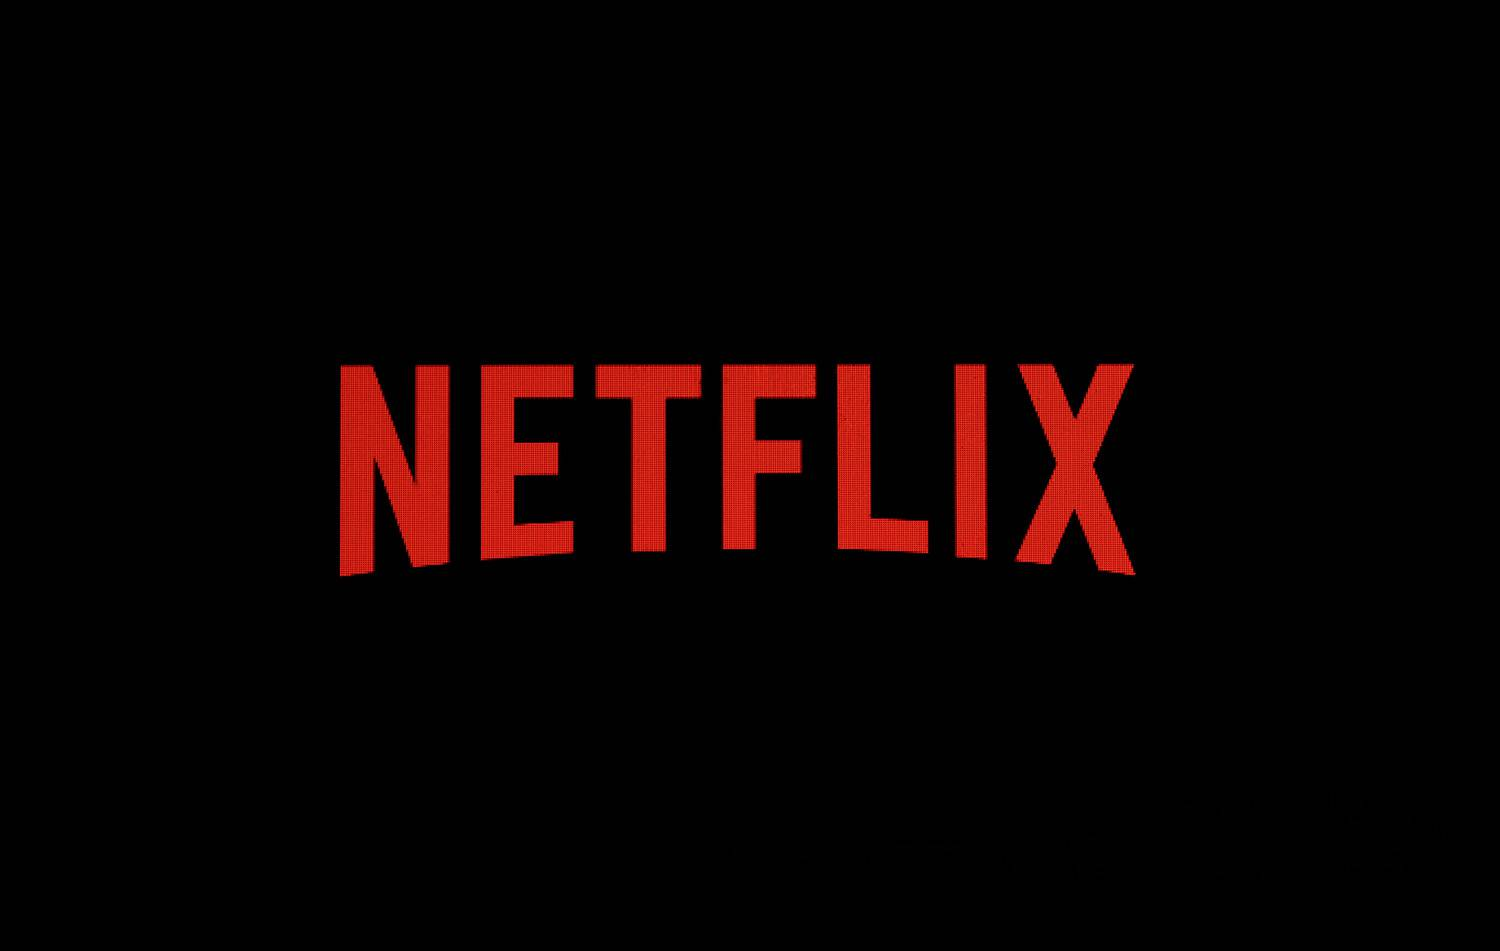 Netflix airplay